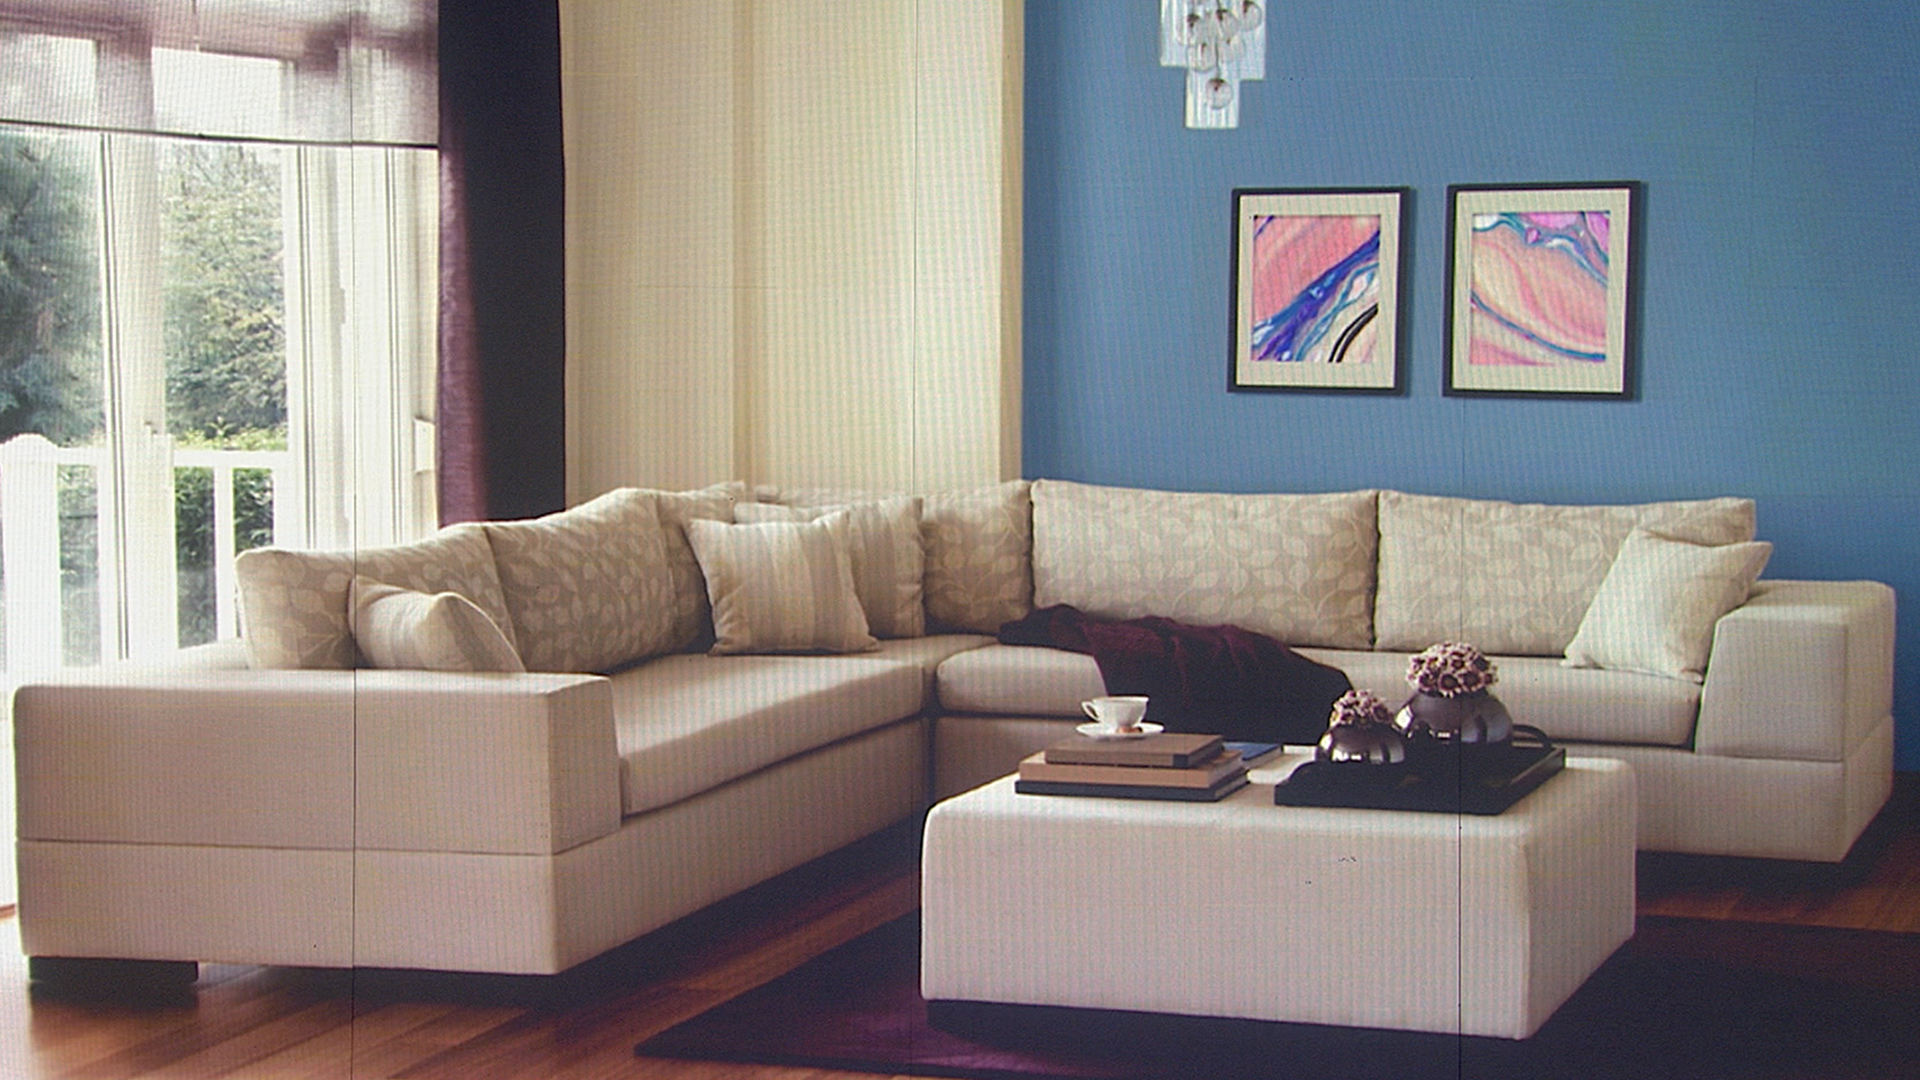 6 design mistakes to avoid in bedroom living room for Living room today